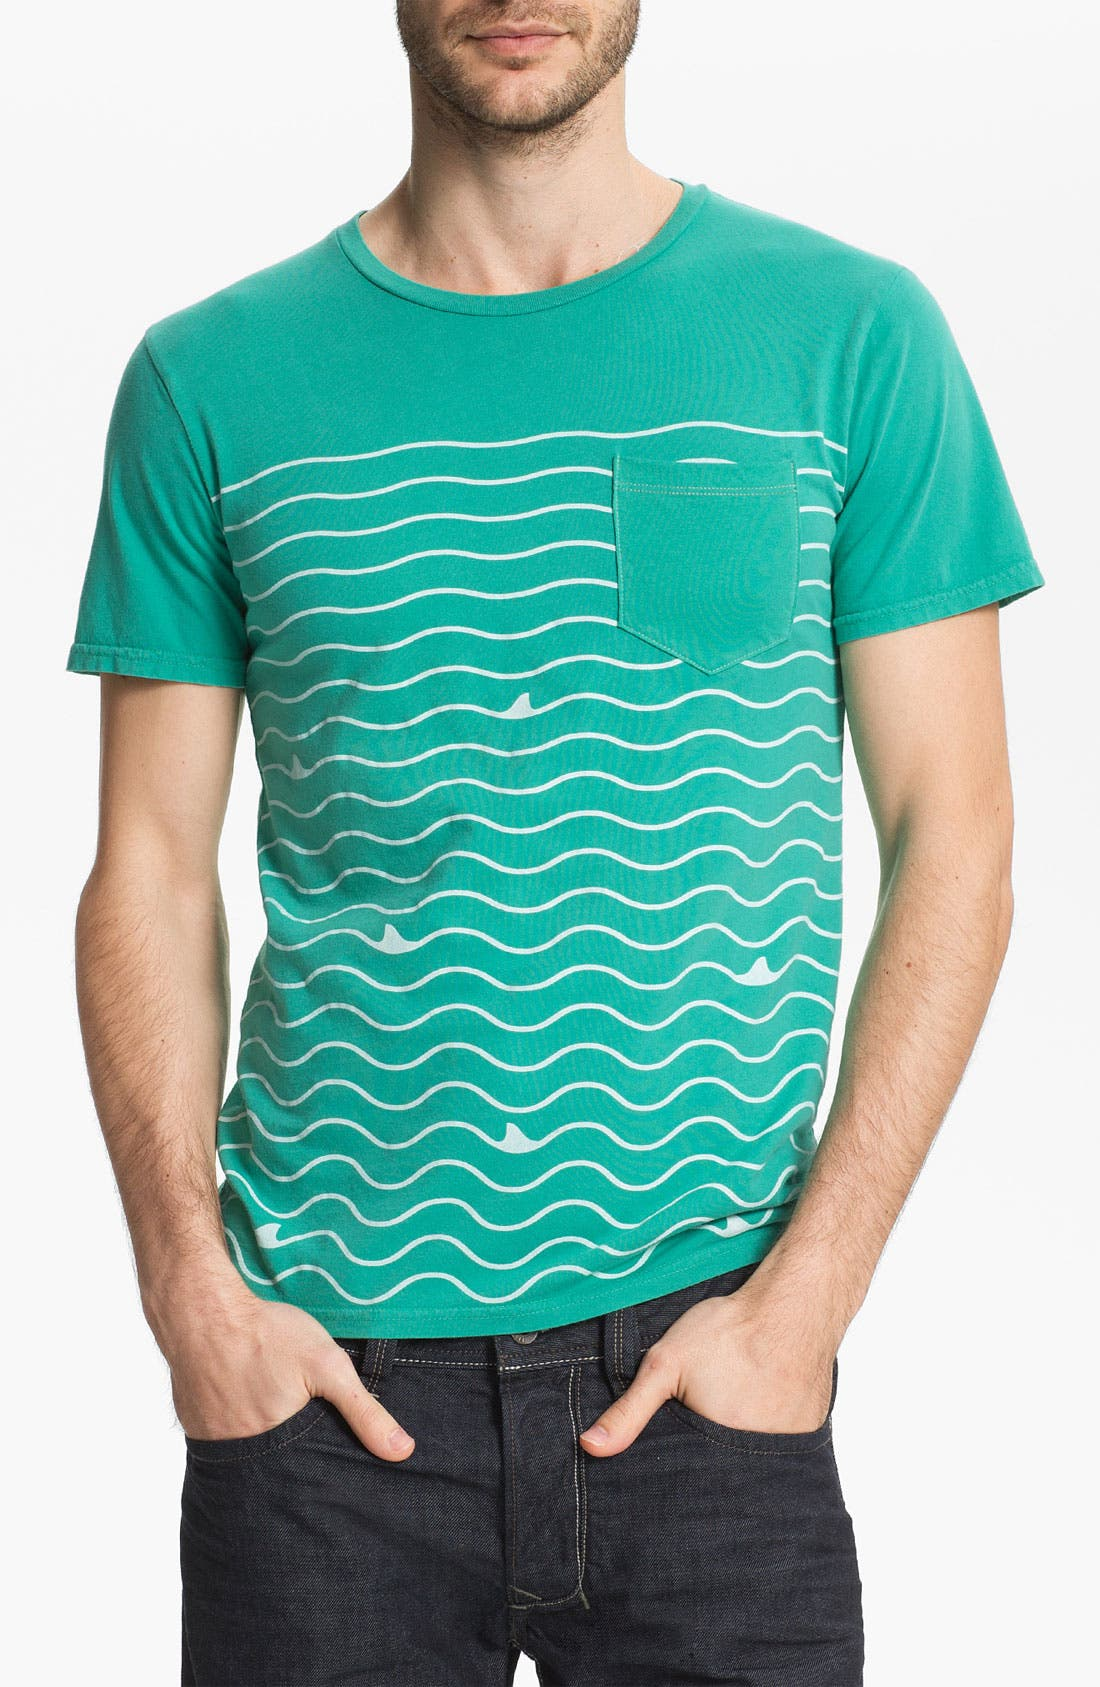 Alternate Image 1 Selected - Altru 'Shark Lines' Pocket T-Shirt